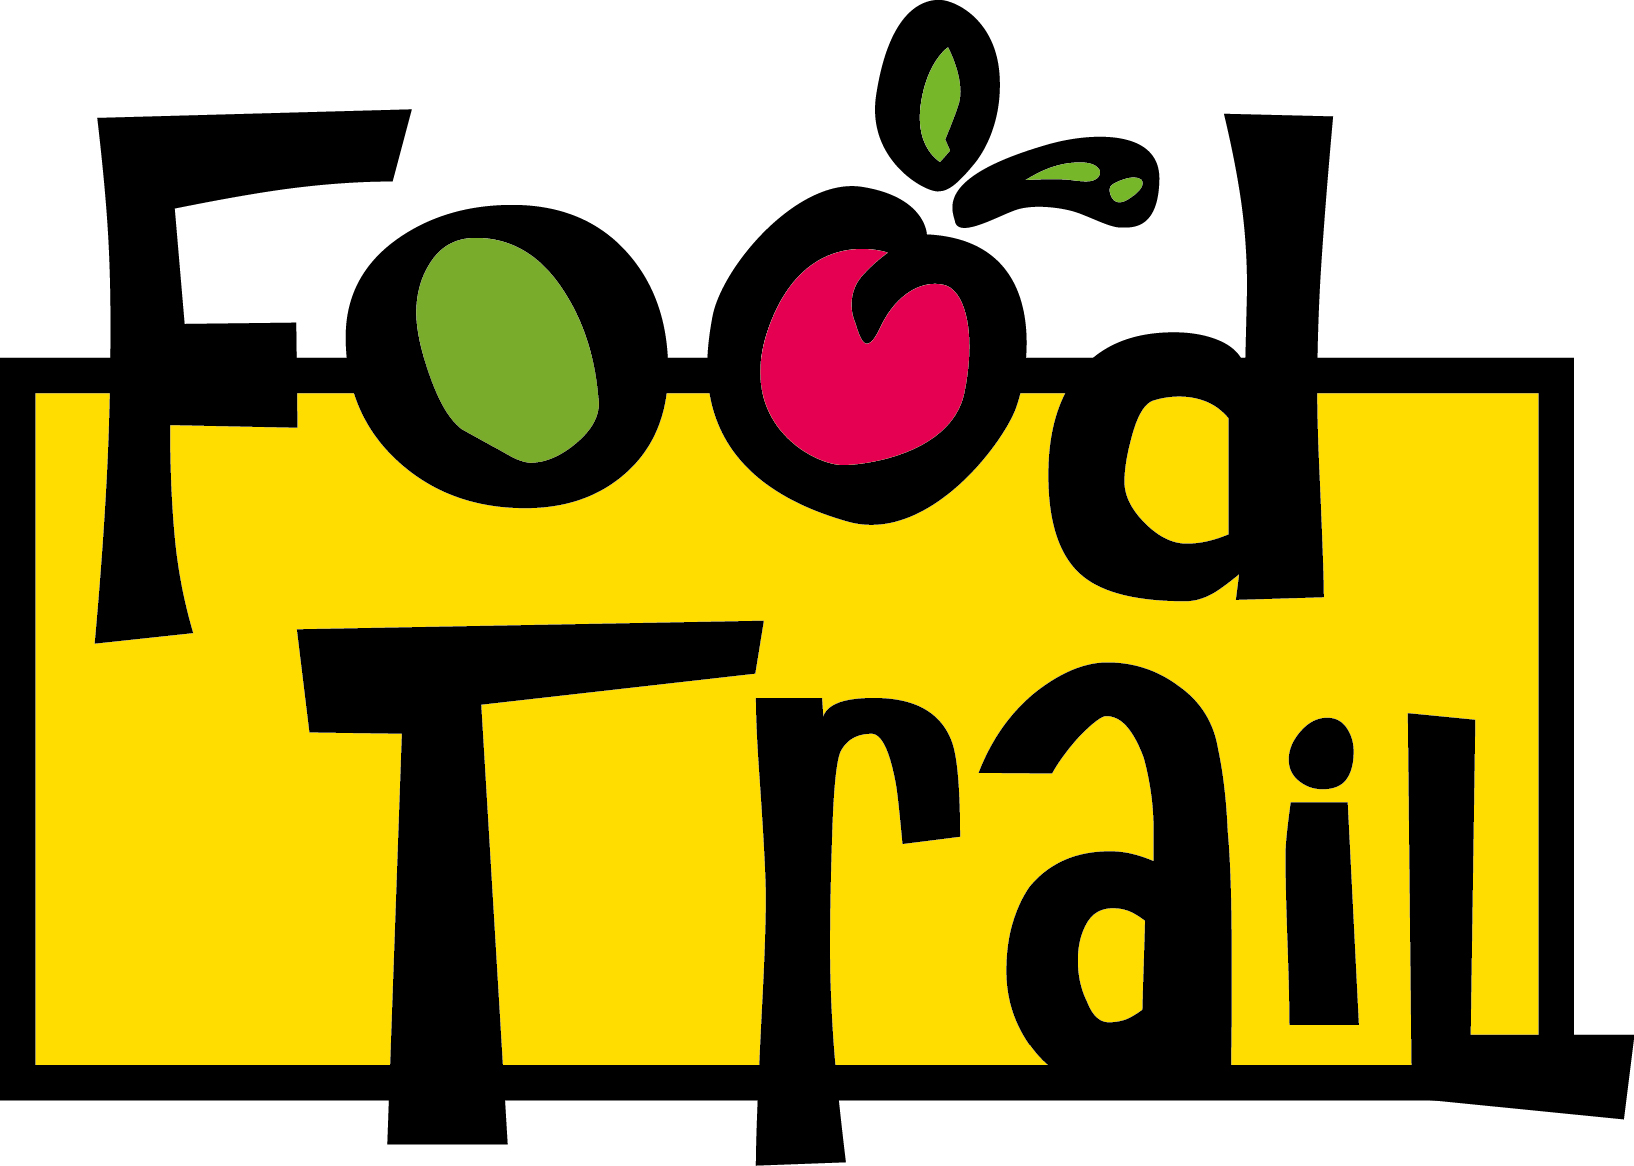 Zaterdag 14 September: Foodtrail in Liestal